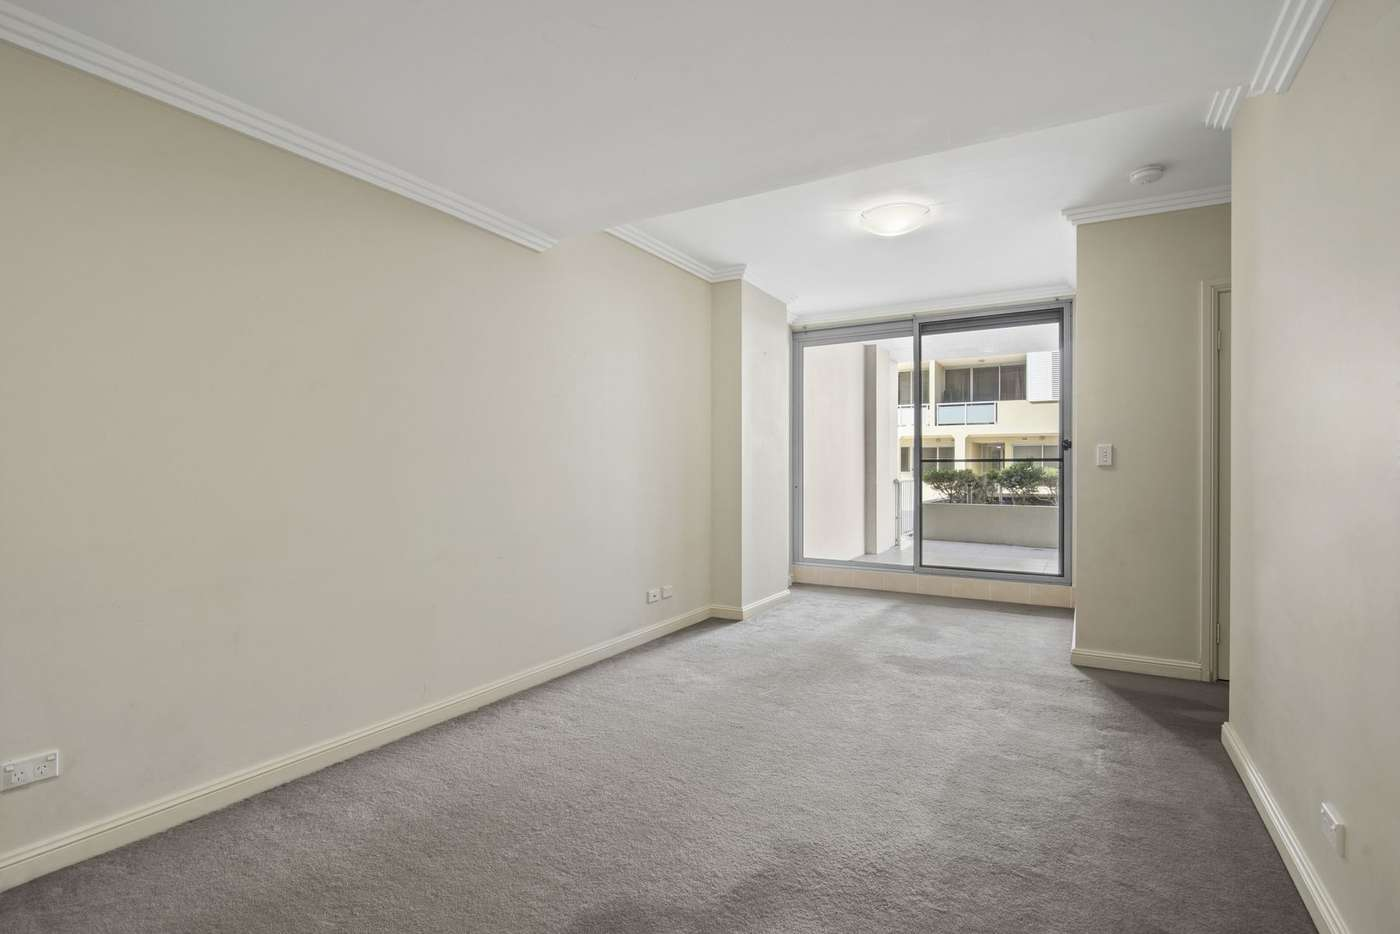 Fifth view of Homely apartment listing, 5/12 Baker Street, Gosford NSW 2250